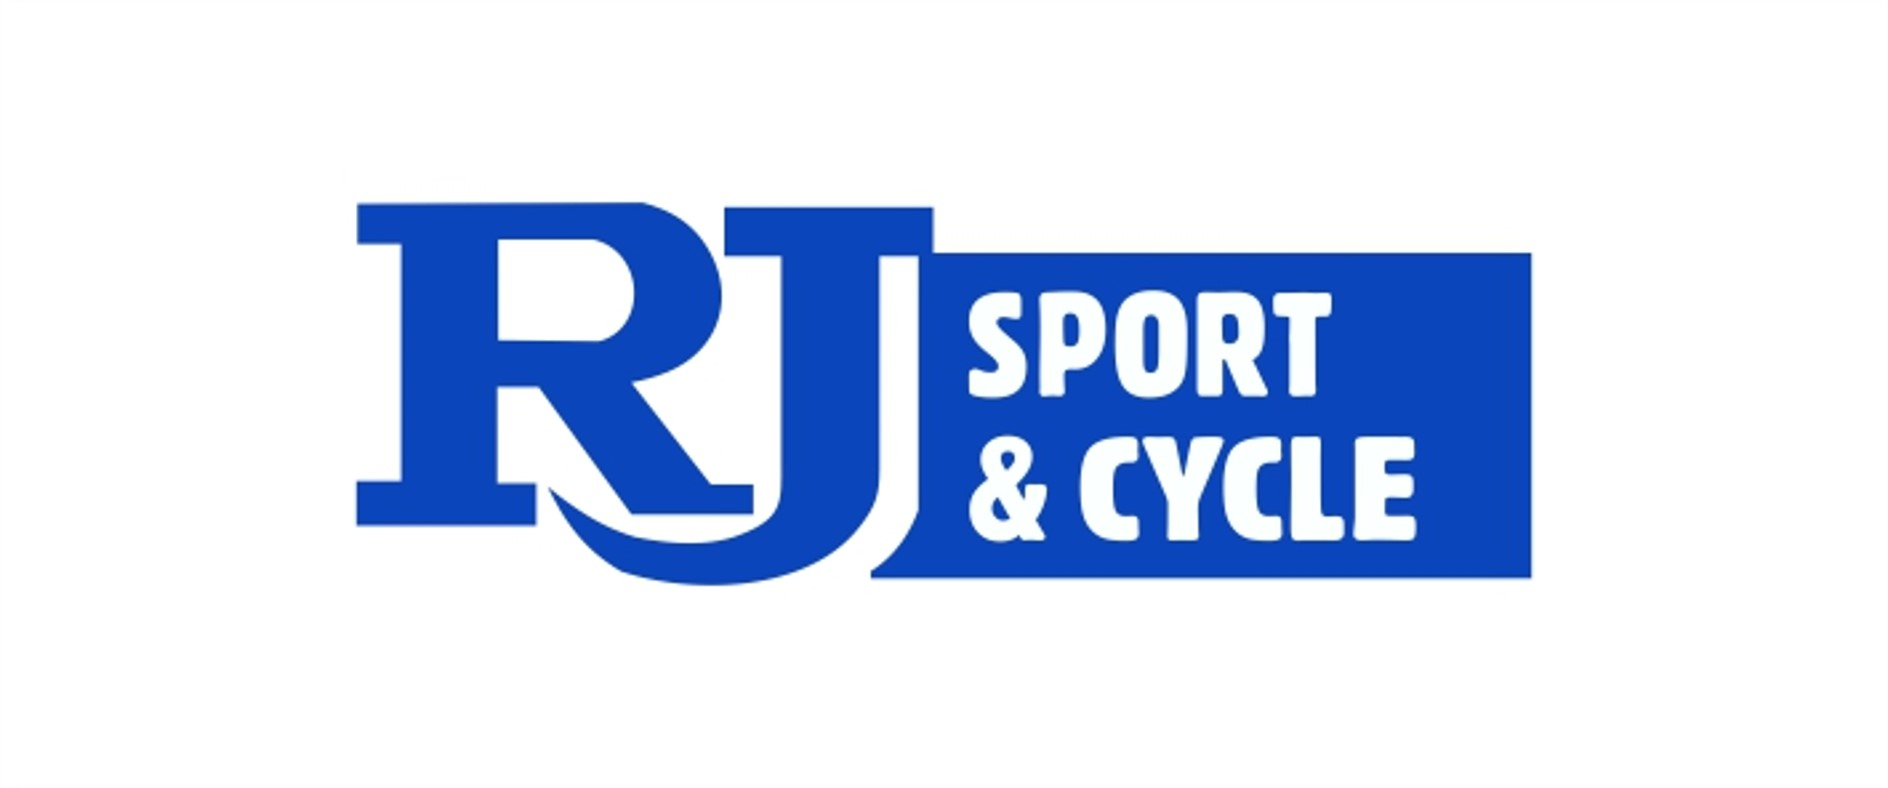 RJ Sport and Cycle, RJ